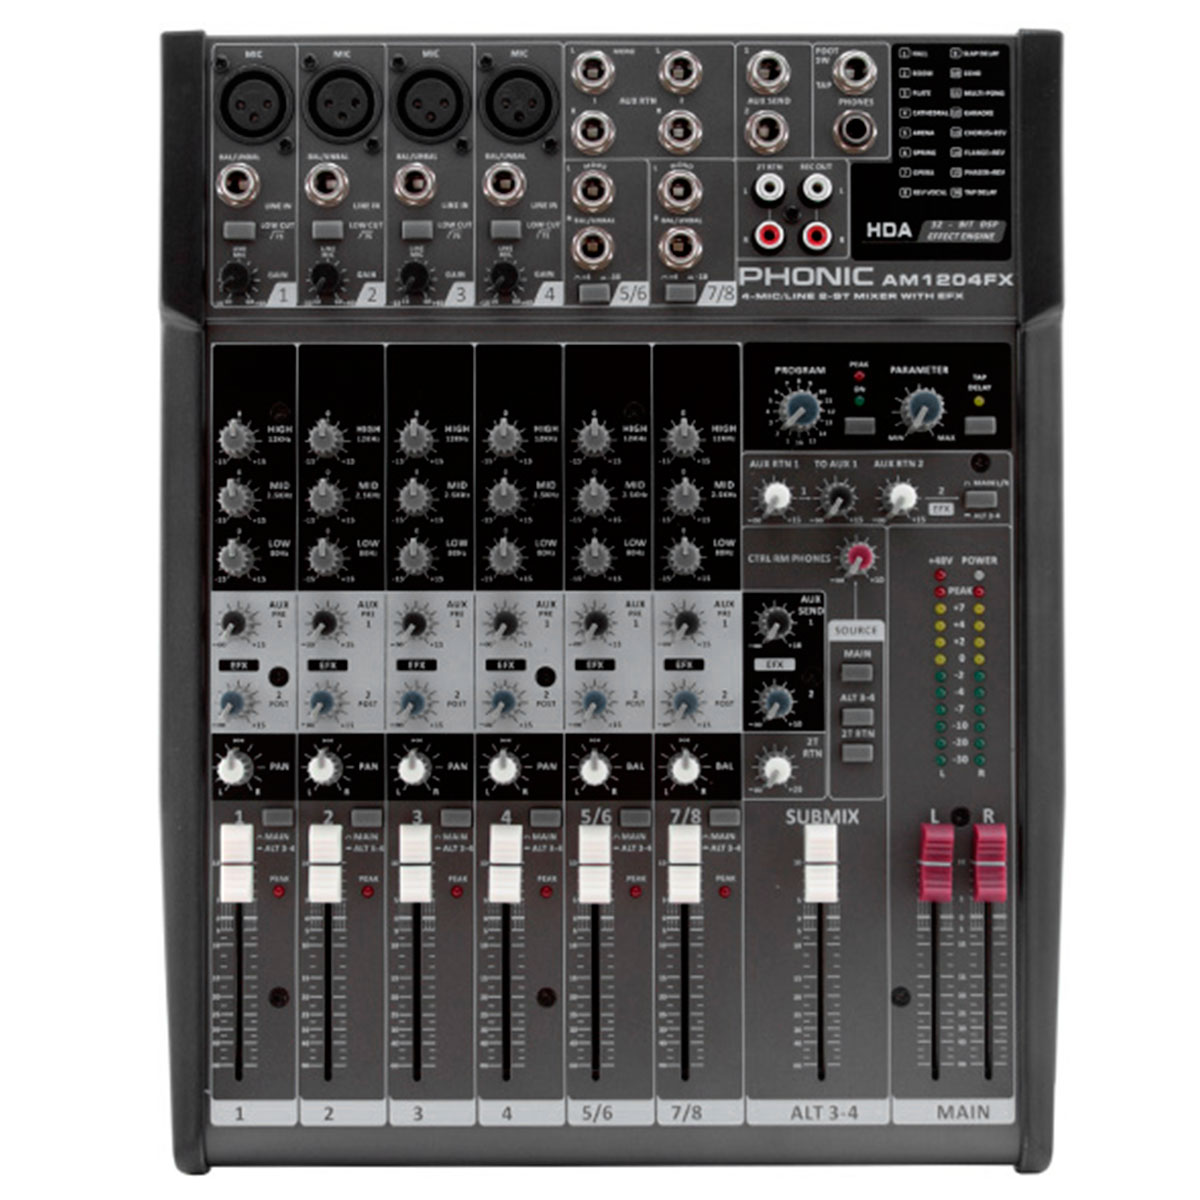 AM1204FX - Mesa de Som / Mixer 8 Canais AM 1204 FX - Phonic